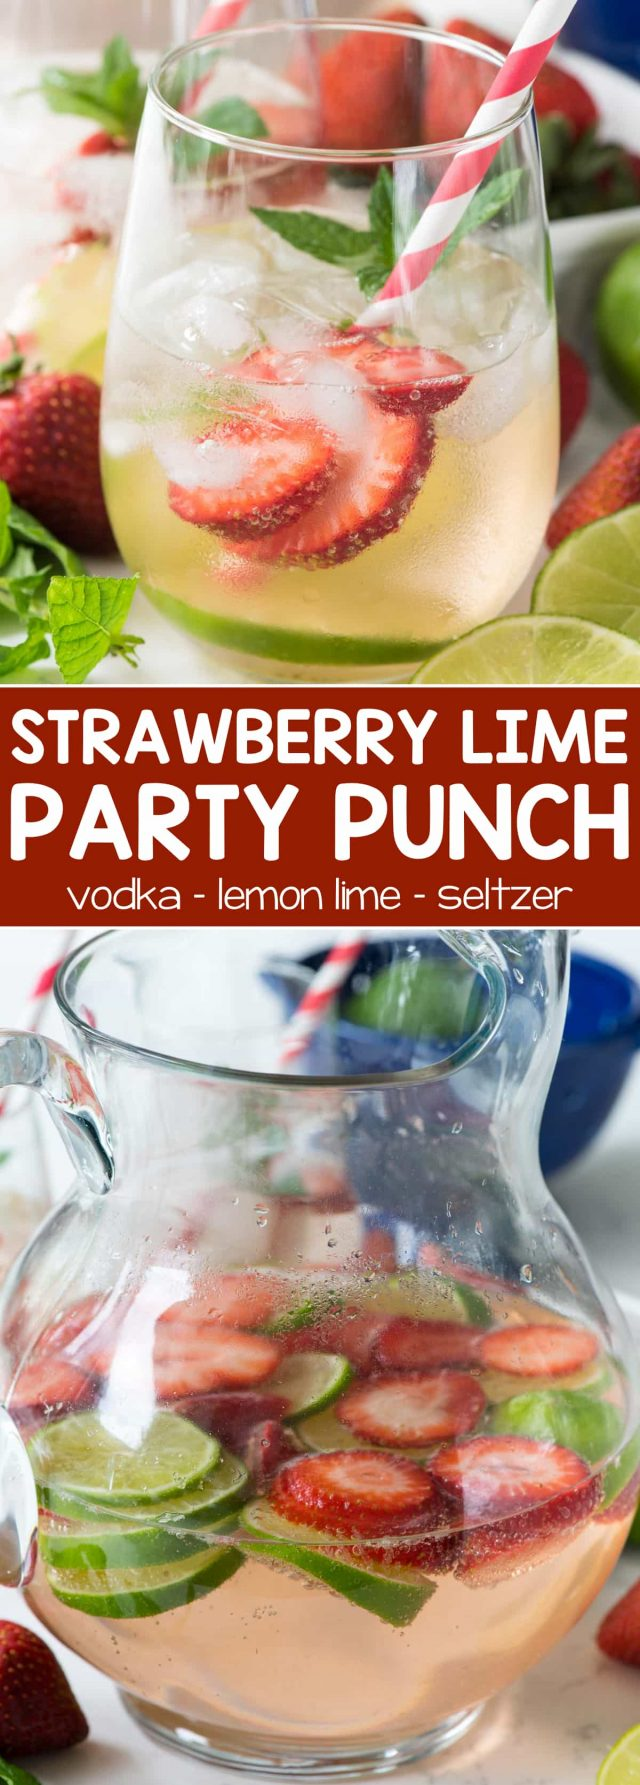 Strawberry Lime Party Punch - this easy cocktail recipe has just 3 ingredients: strawberry vodka, lemon lime soda, and seltzer. The perfect refreshing party punch cocktail!